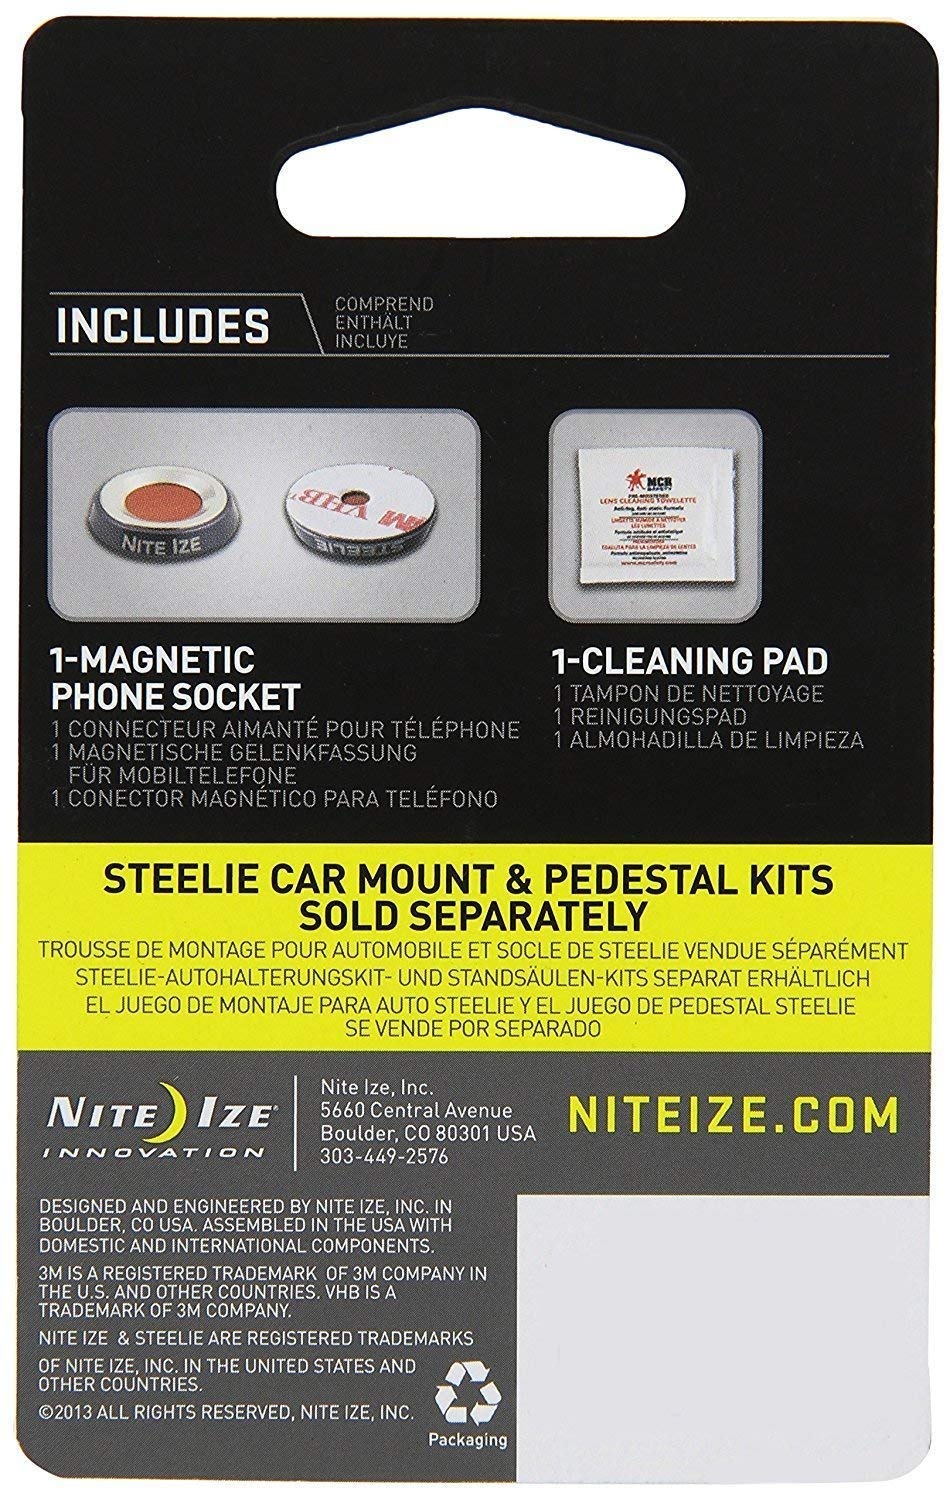 Amazon.com: Nite Ize Original Steelie Magnetic Phone Socket - Additional Magnet for Steelie Phone Mounting Systems (Limited Edition): Home Improvement